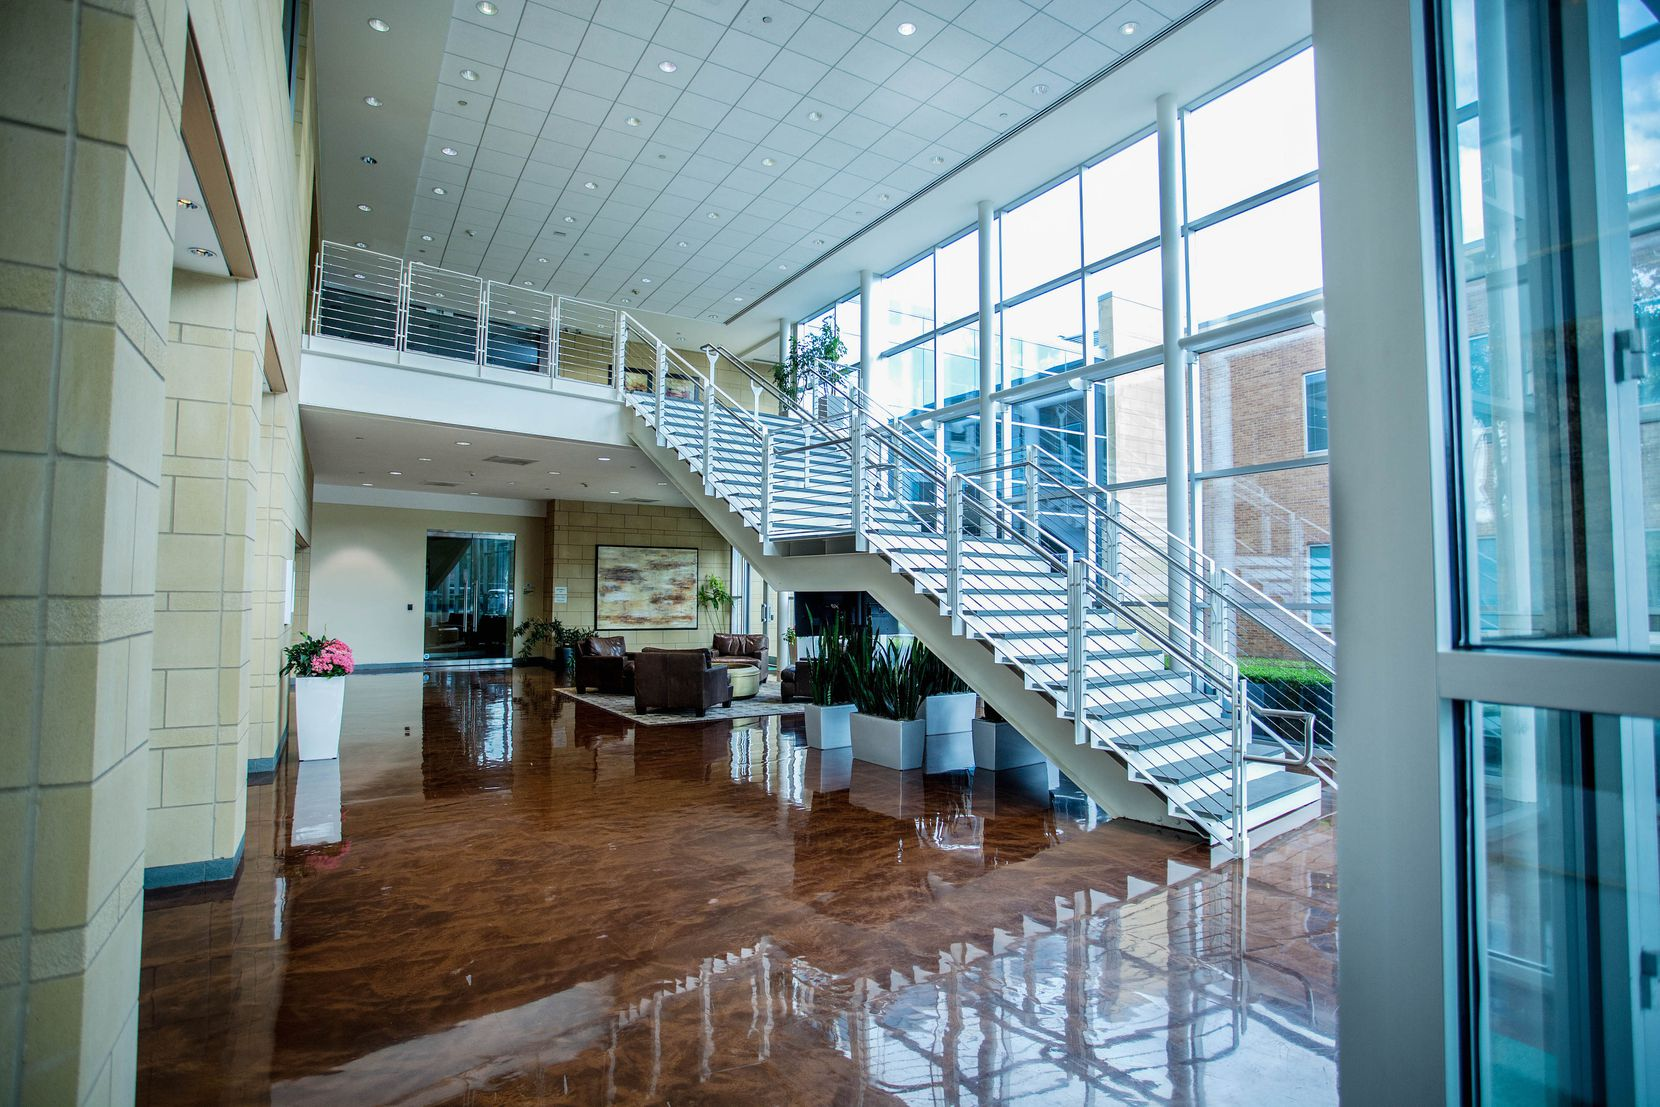 The company plans to grow its North Texas office to about 100 people at 16301 Quorum Drive in Addison.